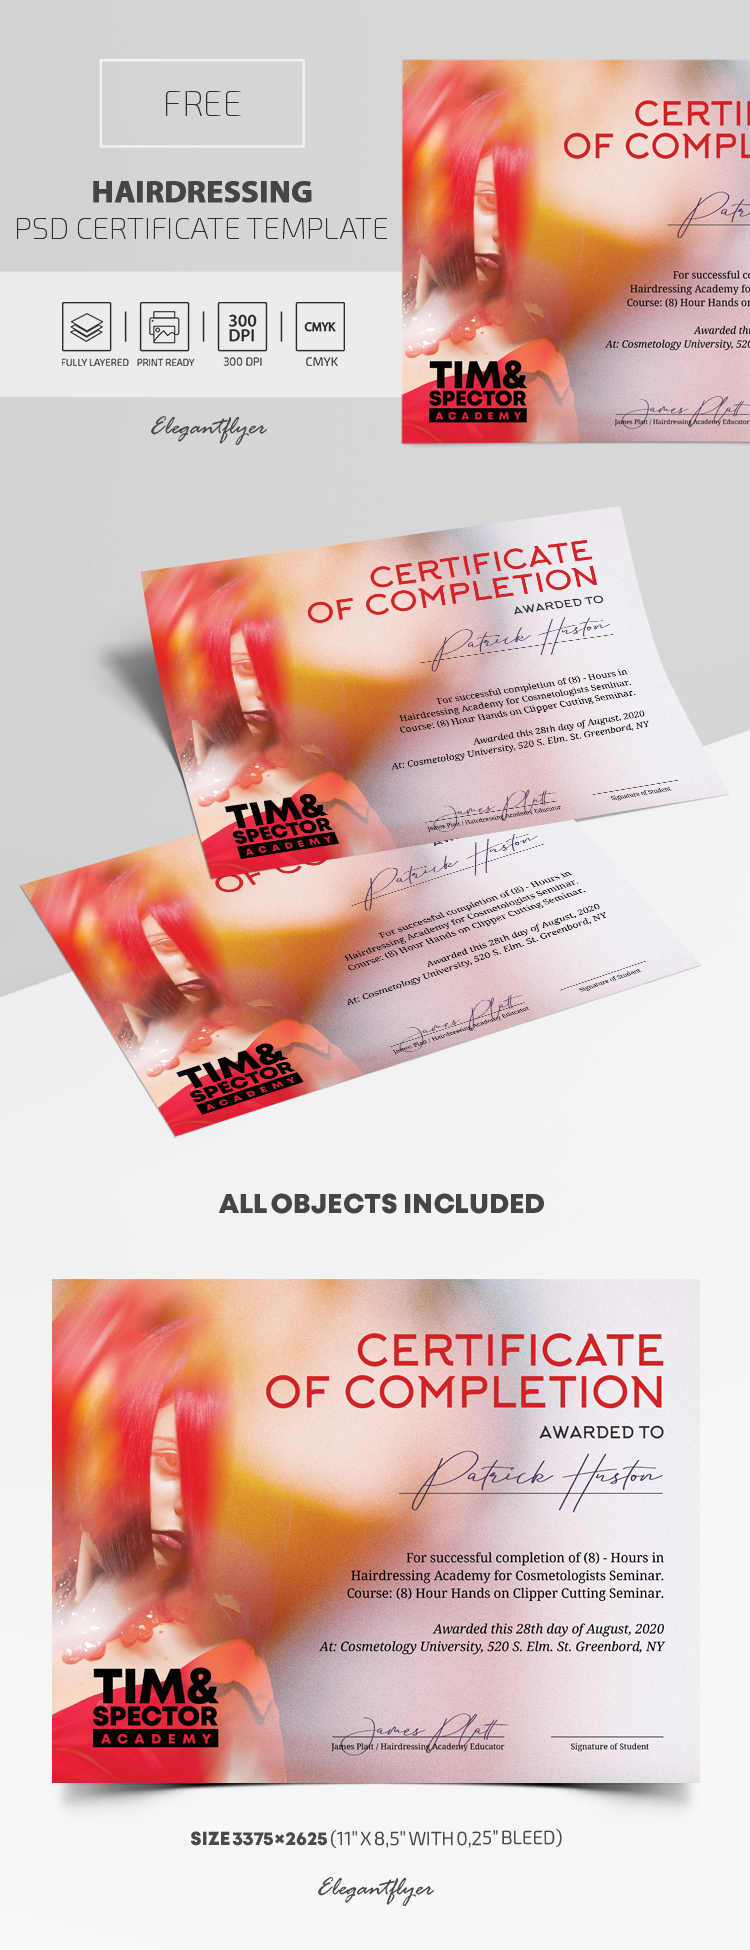 Hairdressing – Free PSD Certificate Template